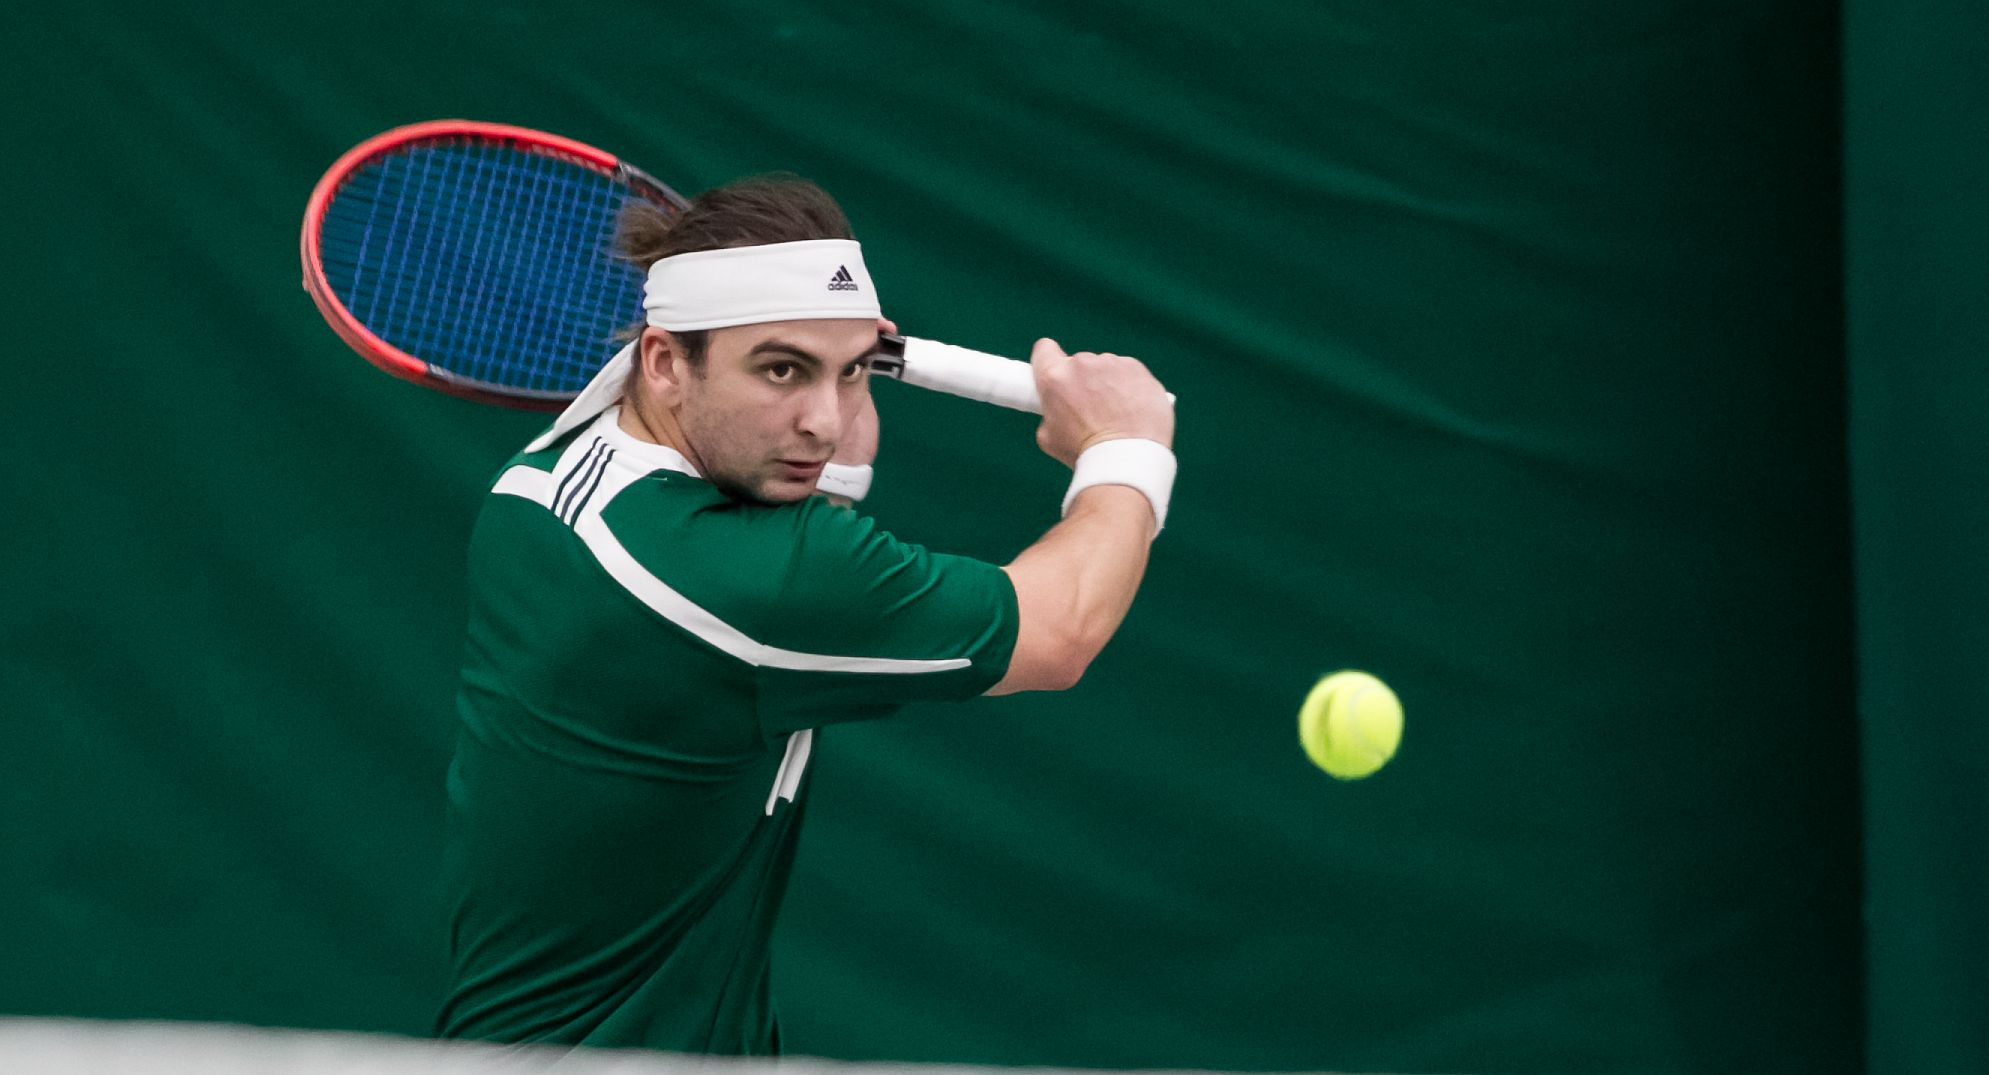 Mick Picks Up Singles Win As Vikings Fall At YSU, 6-1